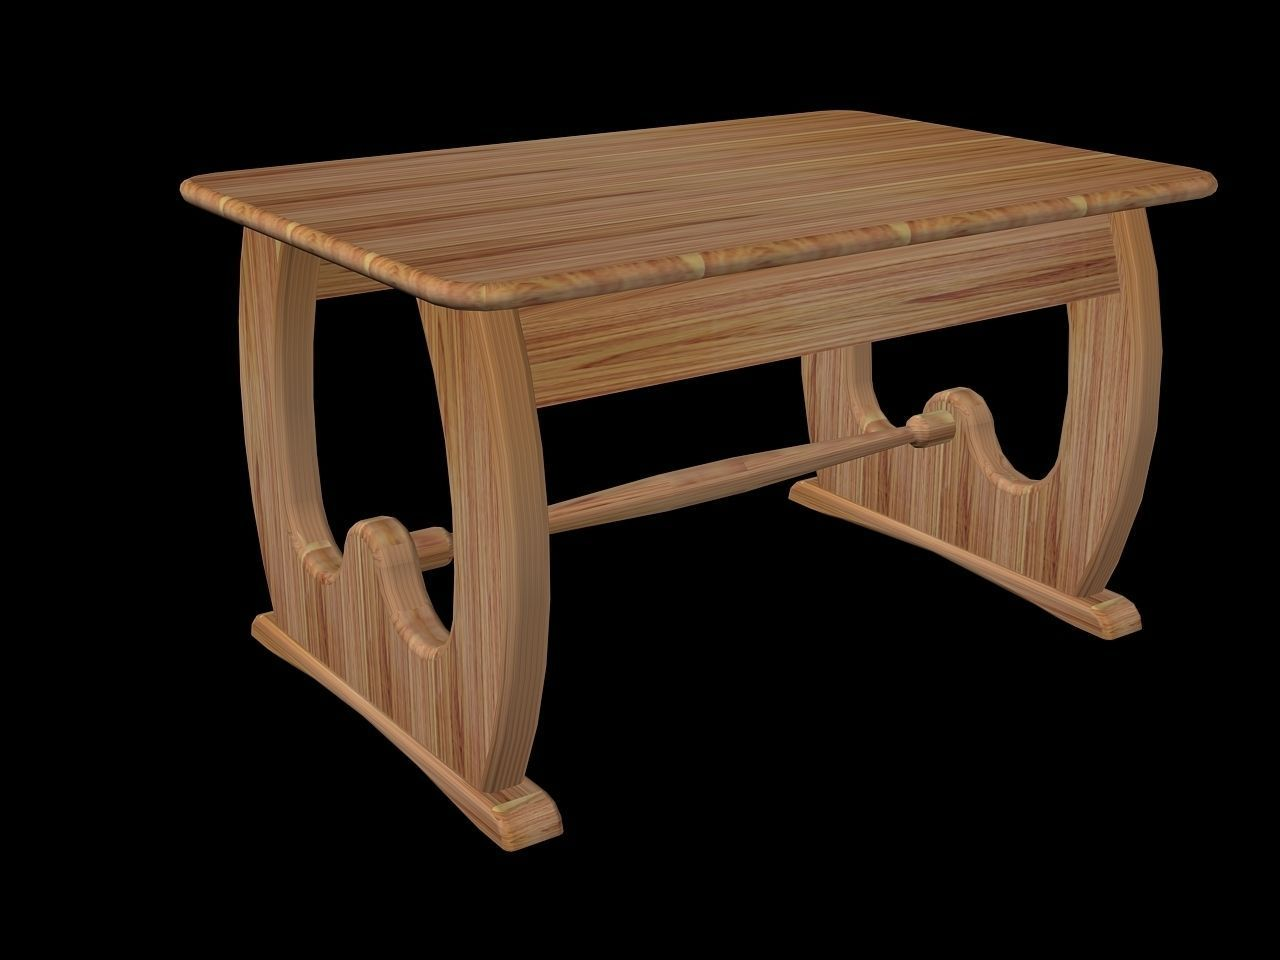 Designed Coffee Table Free 3d Model Dwg